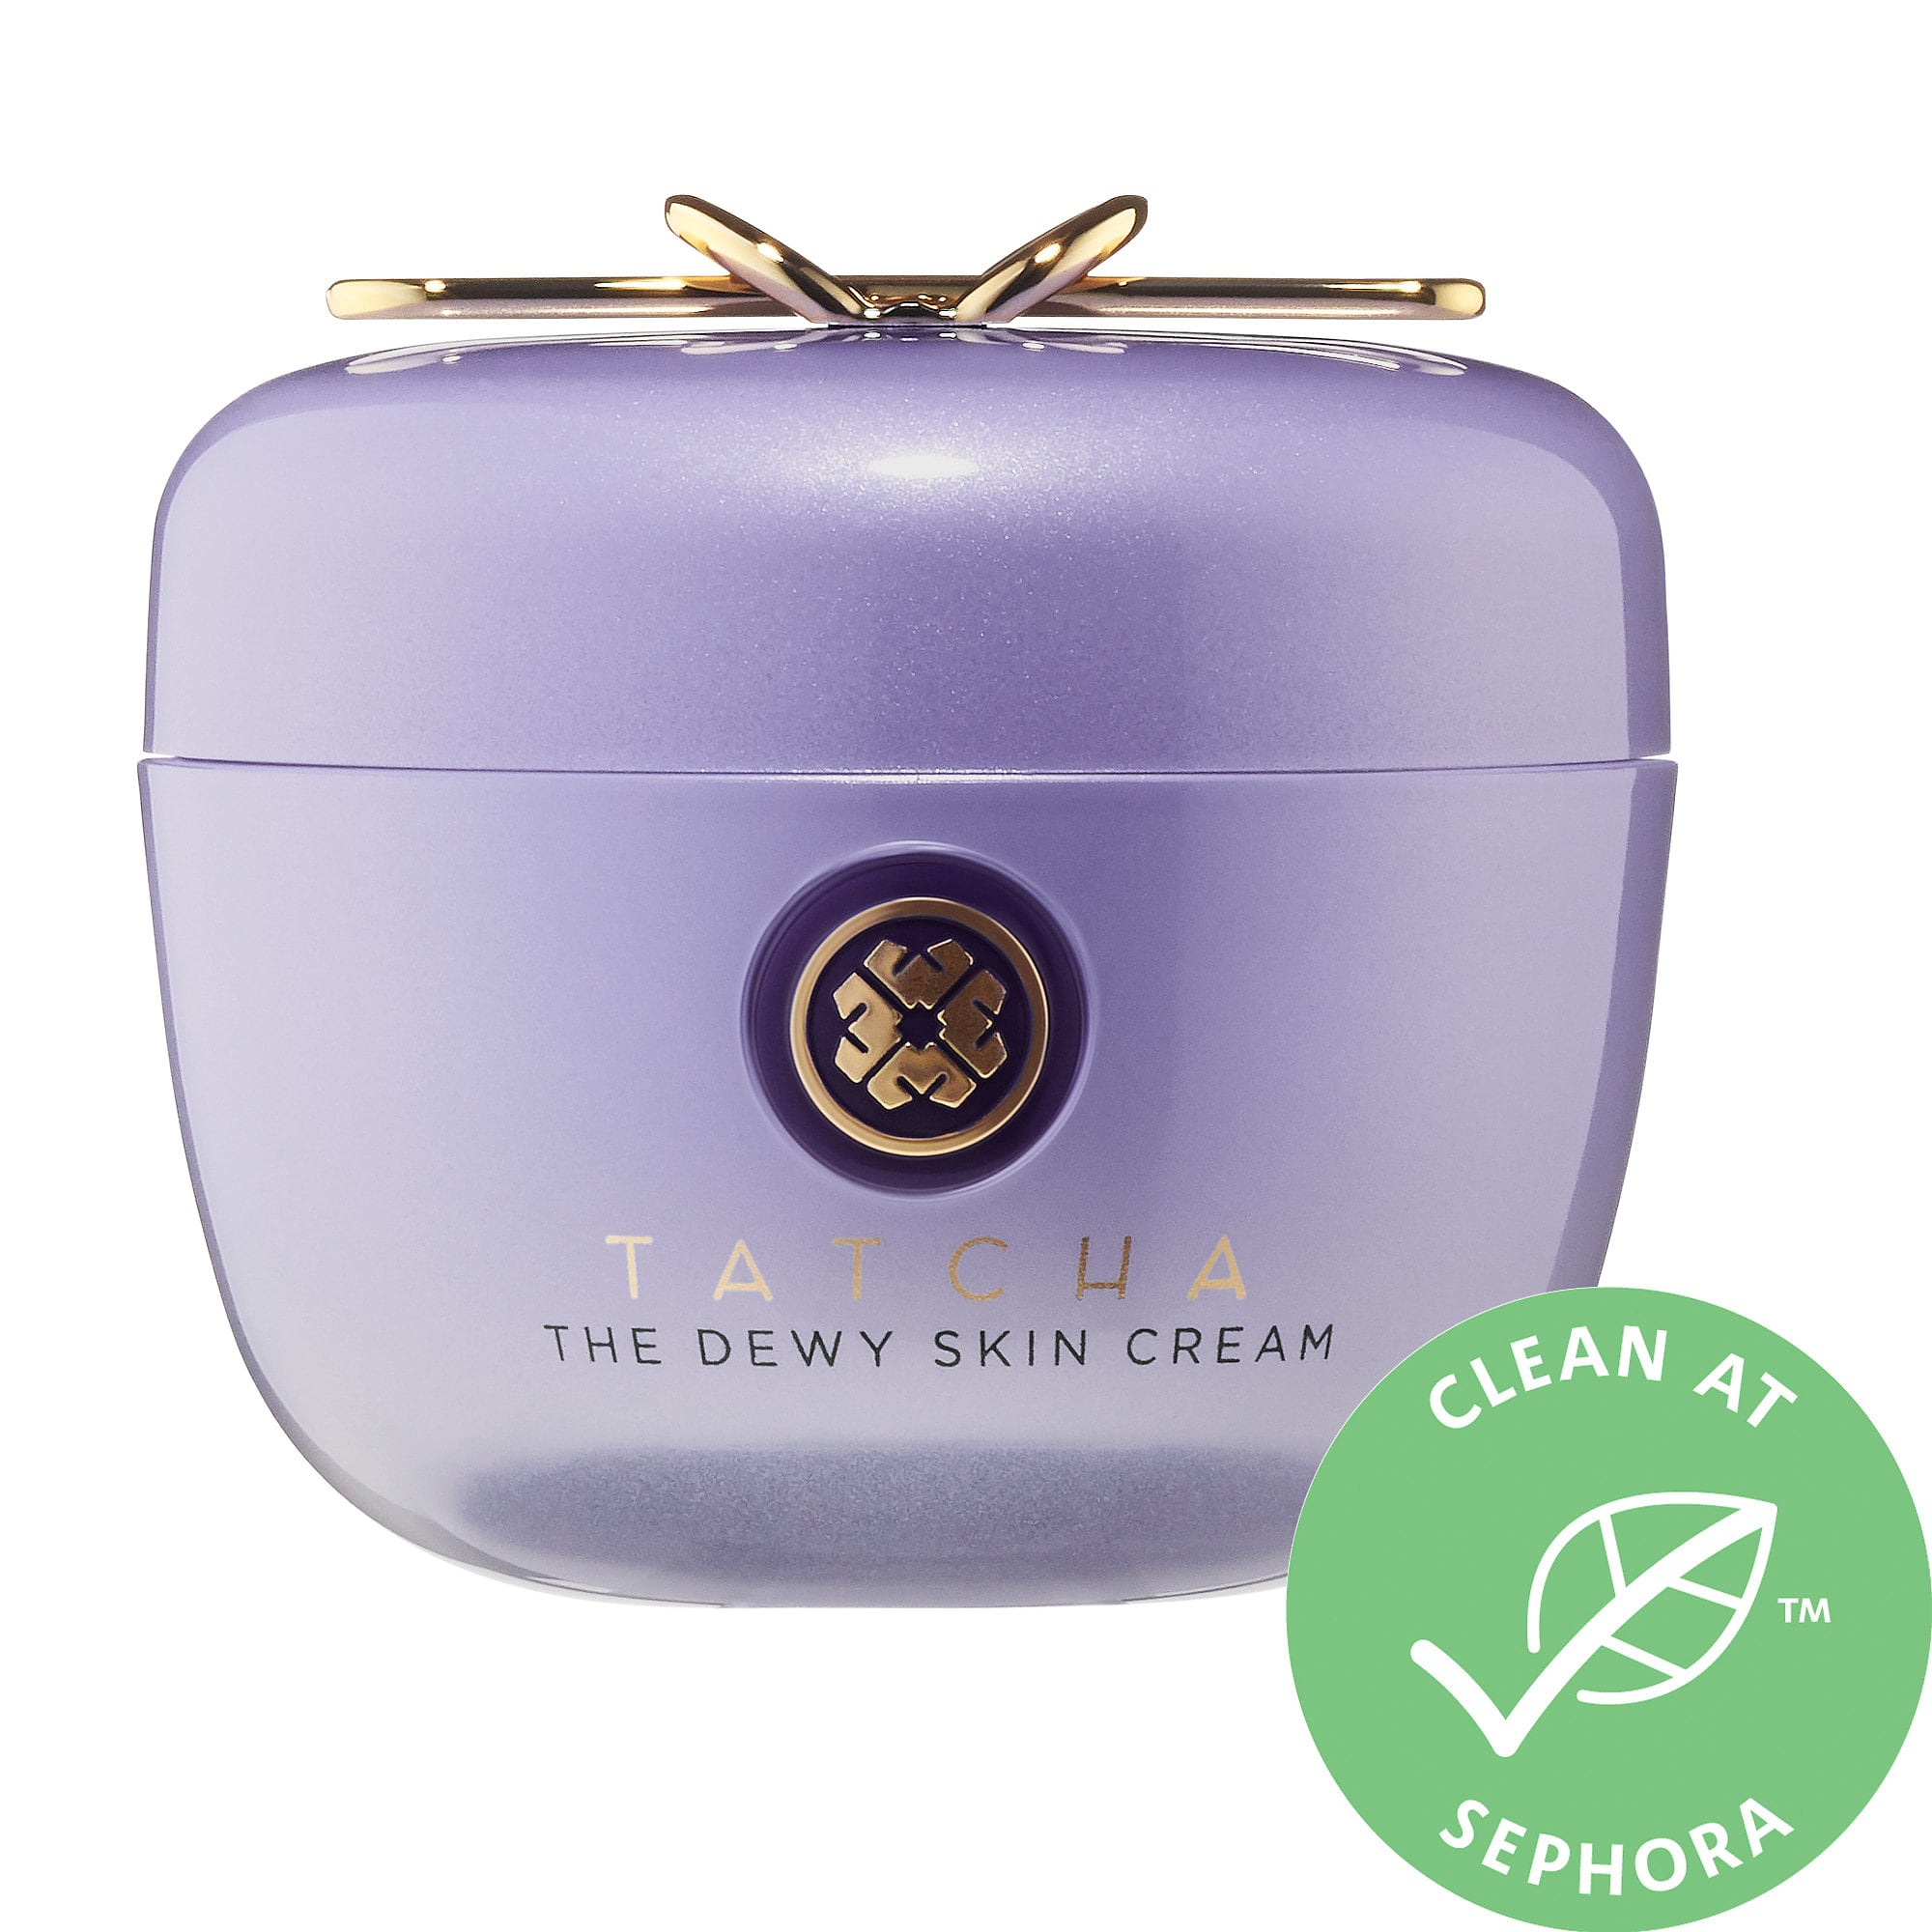 Tatcha-The Dewy Skin Cream